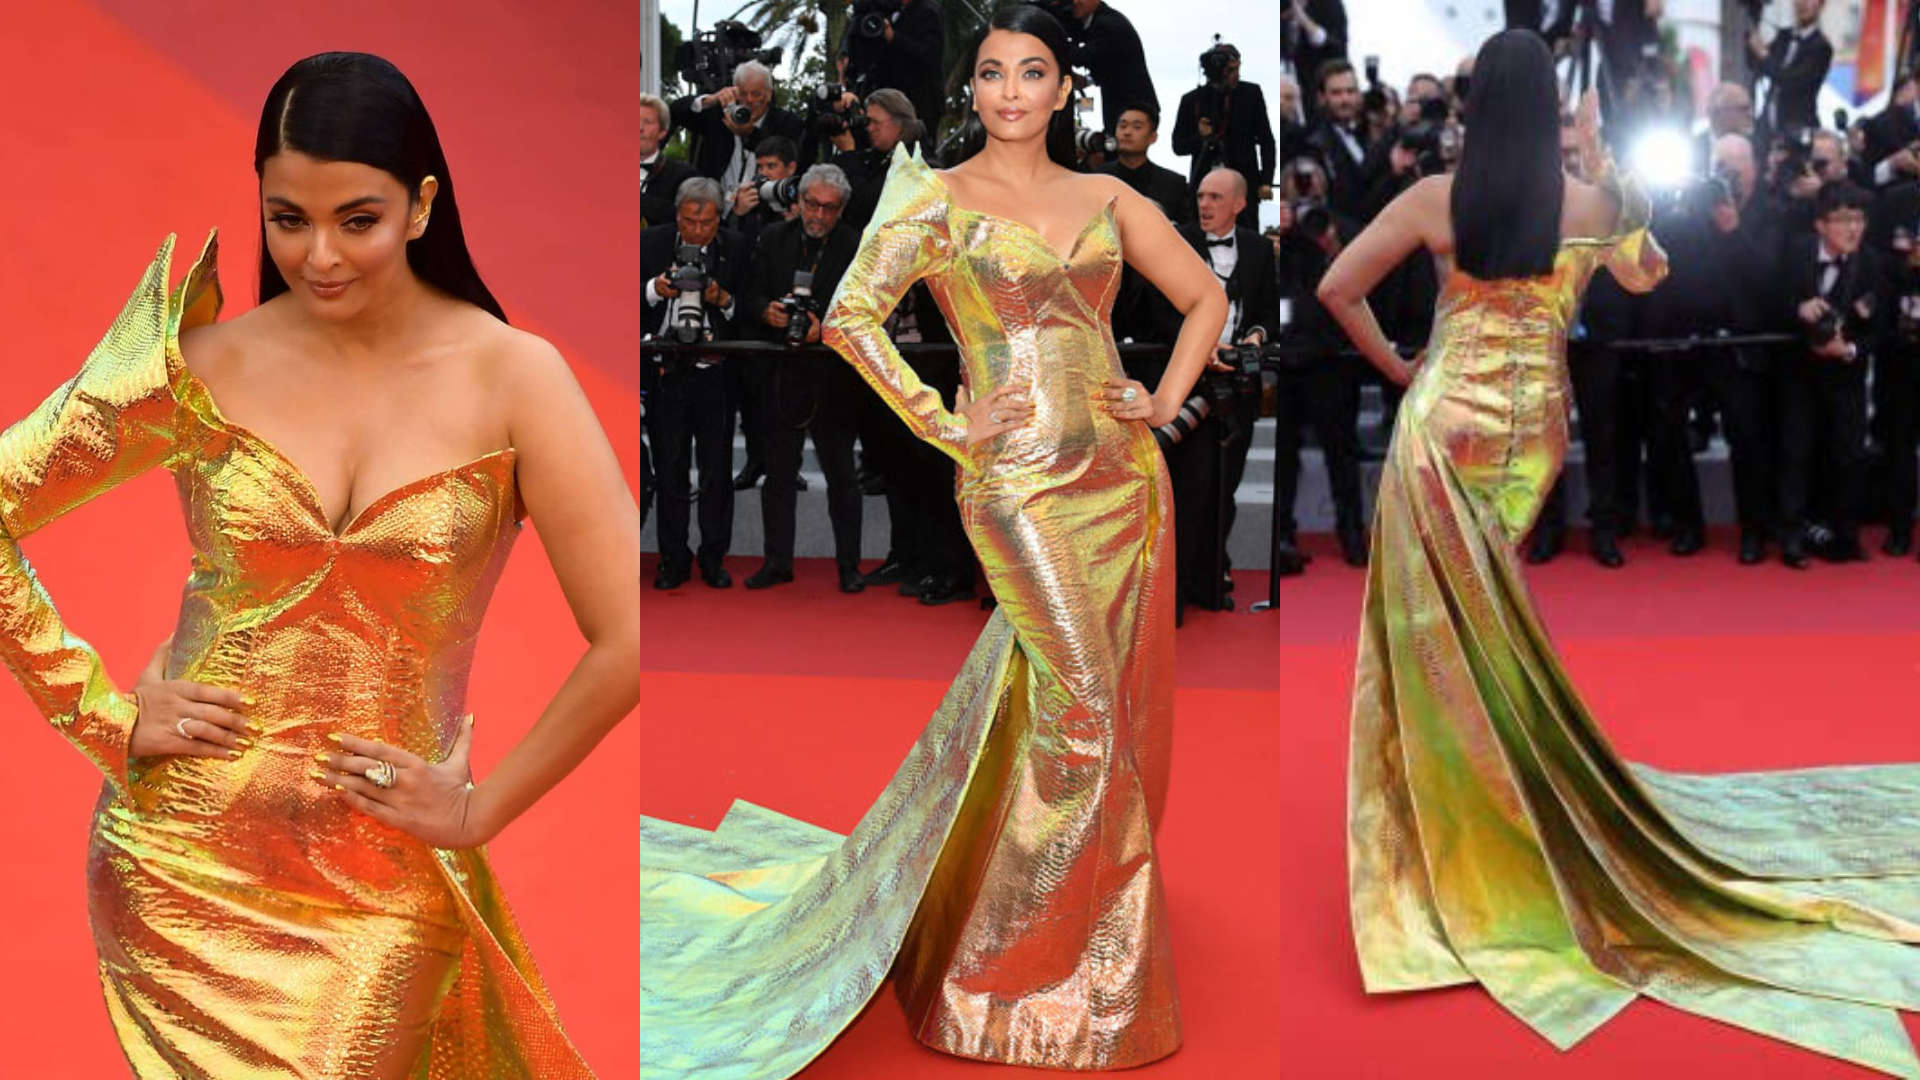 Cannes 2019: Aishwarya Rai Bachchan turns into a golden mermaid on the red carpet